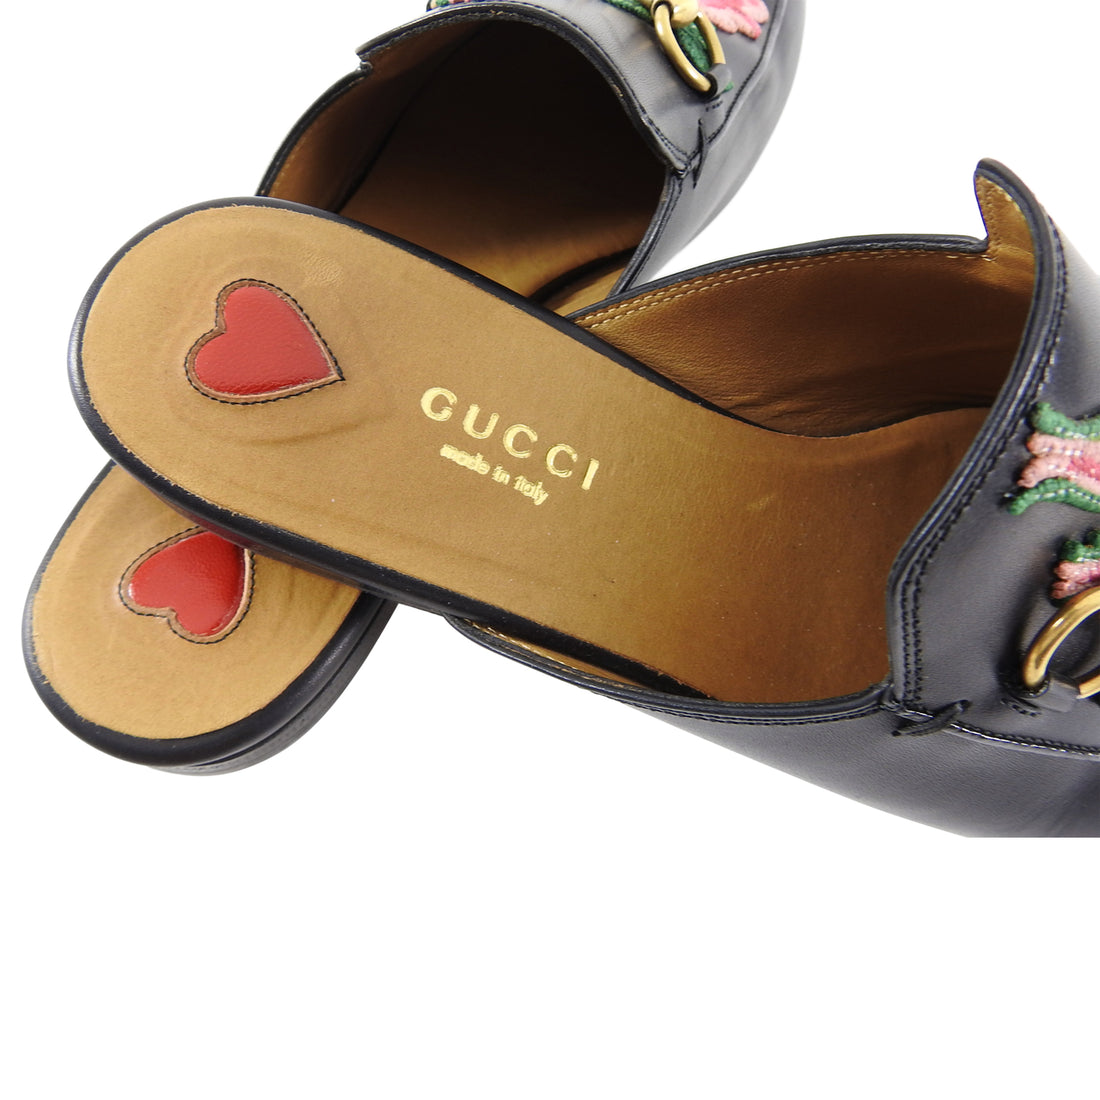 Gucci Princetown Slipper with Embroidered Rose - 6.5